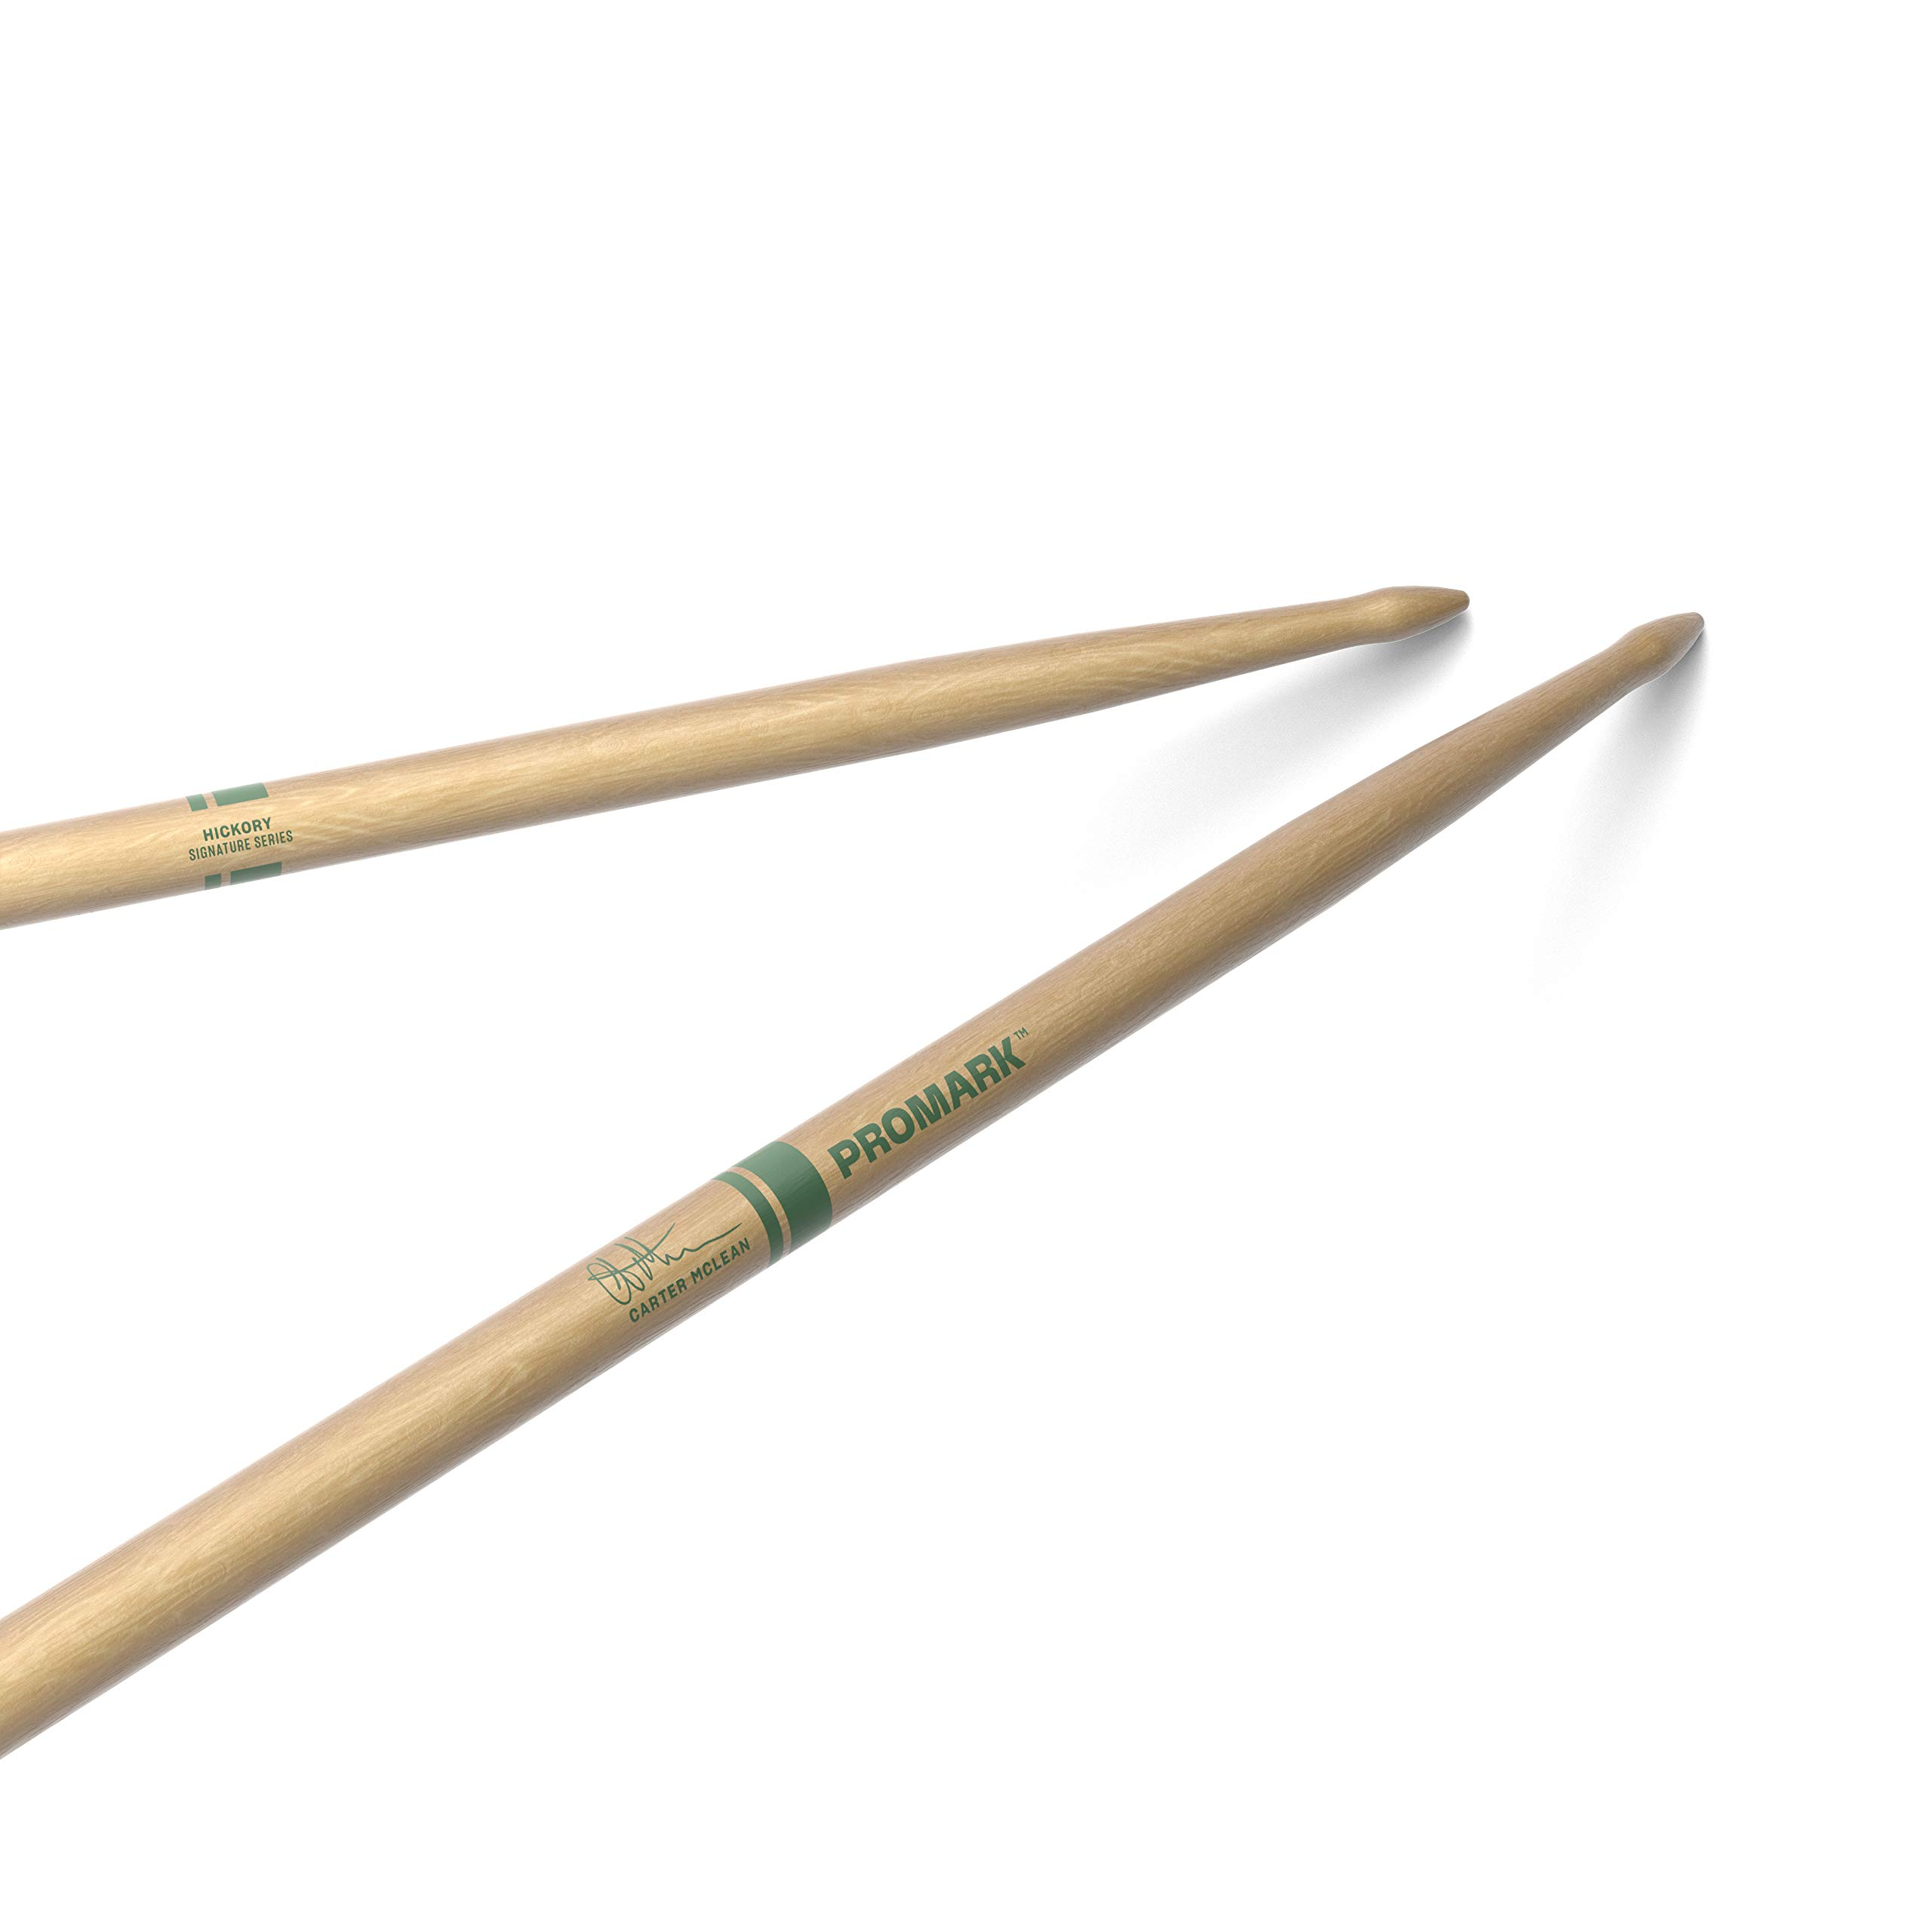 ProMark Carter McLean Hickory Drumsticks, Wood Tip, One Pair